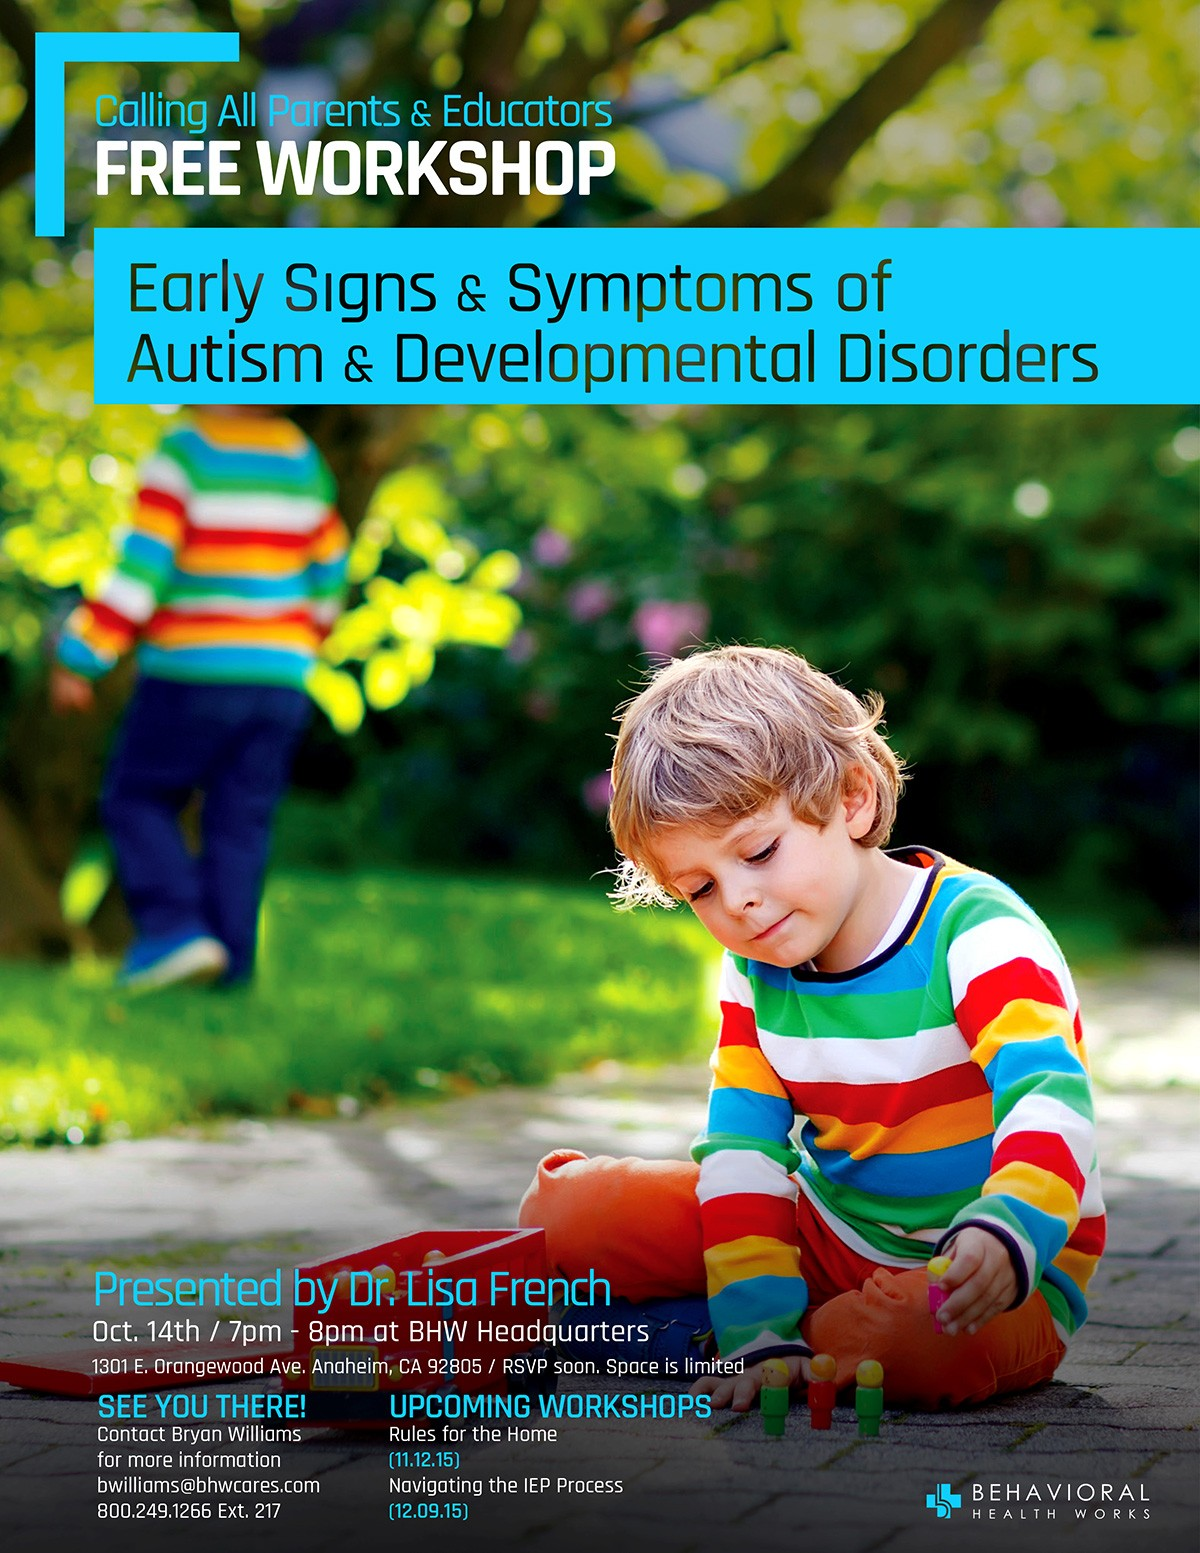 Early Signs and Symptoms of Autism